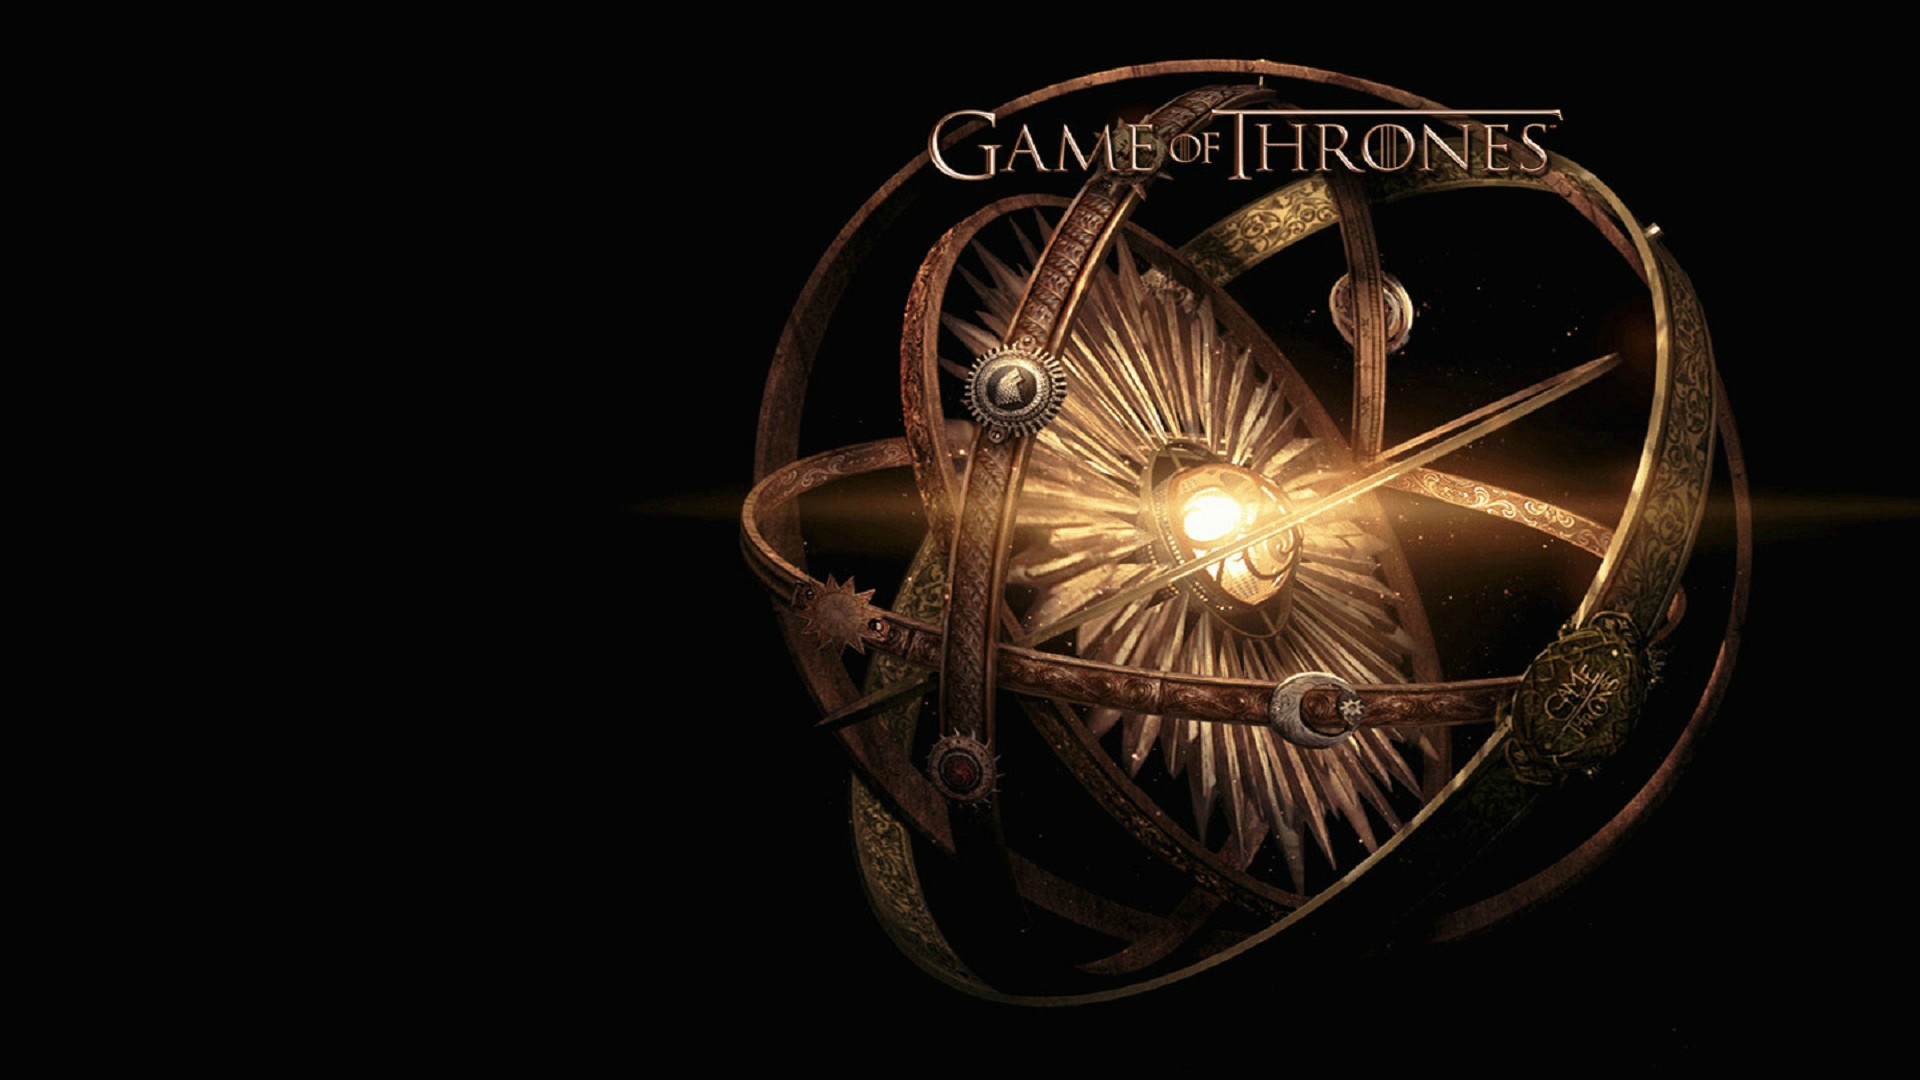 Game of thrones wallpaper hd 1920x1080